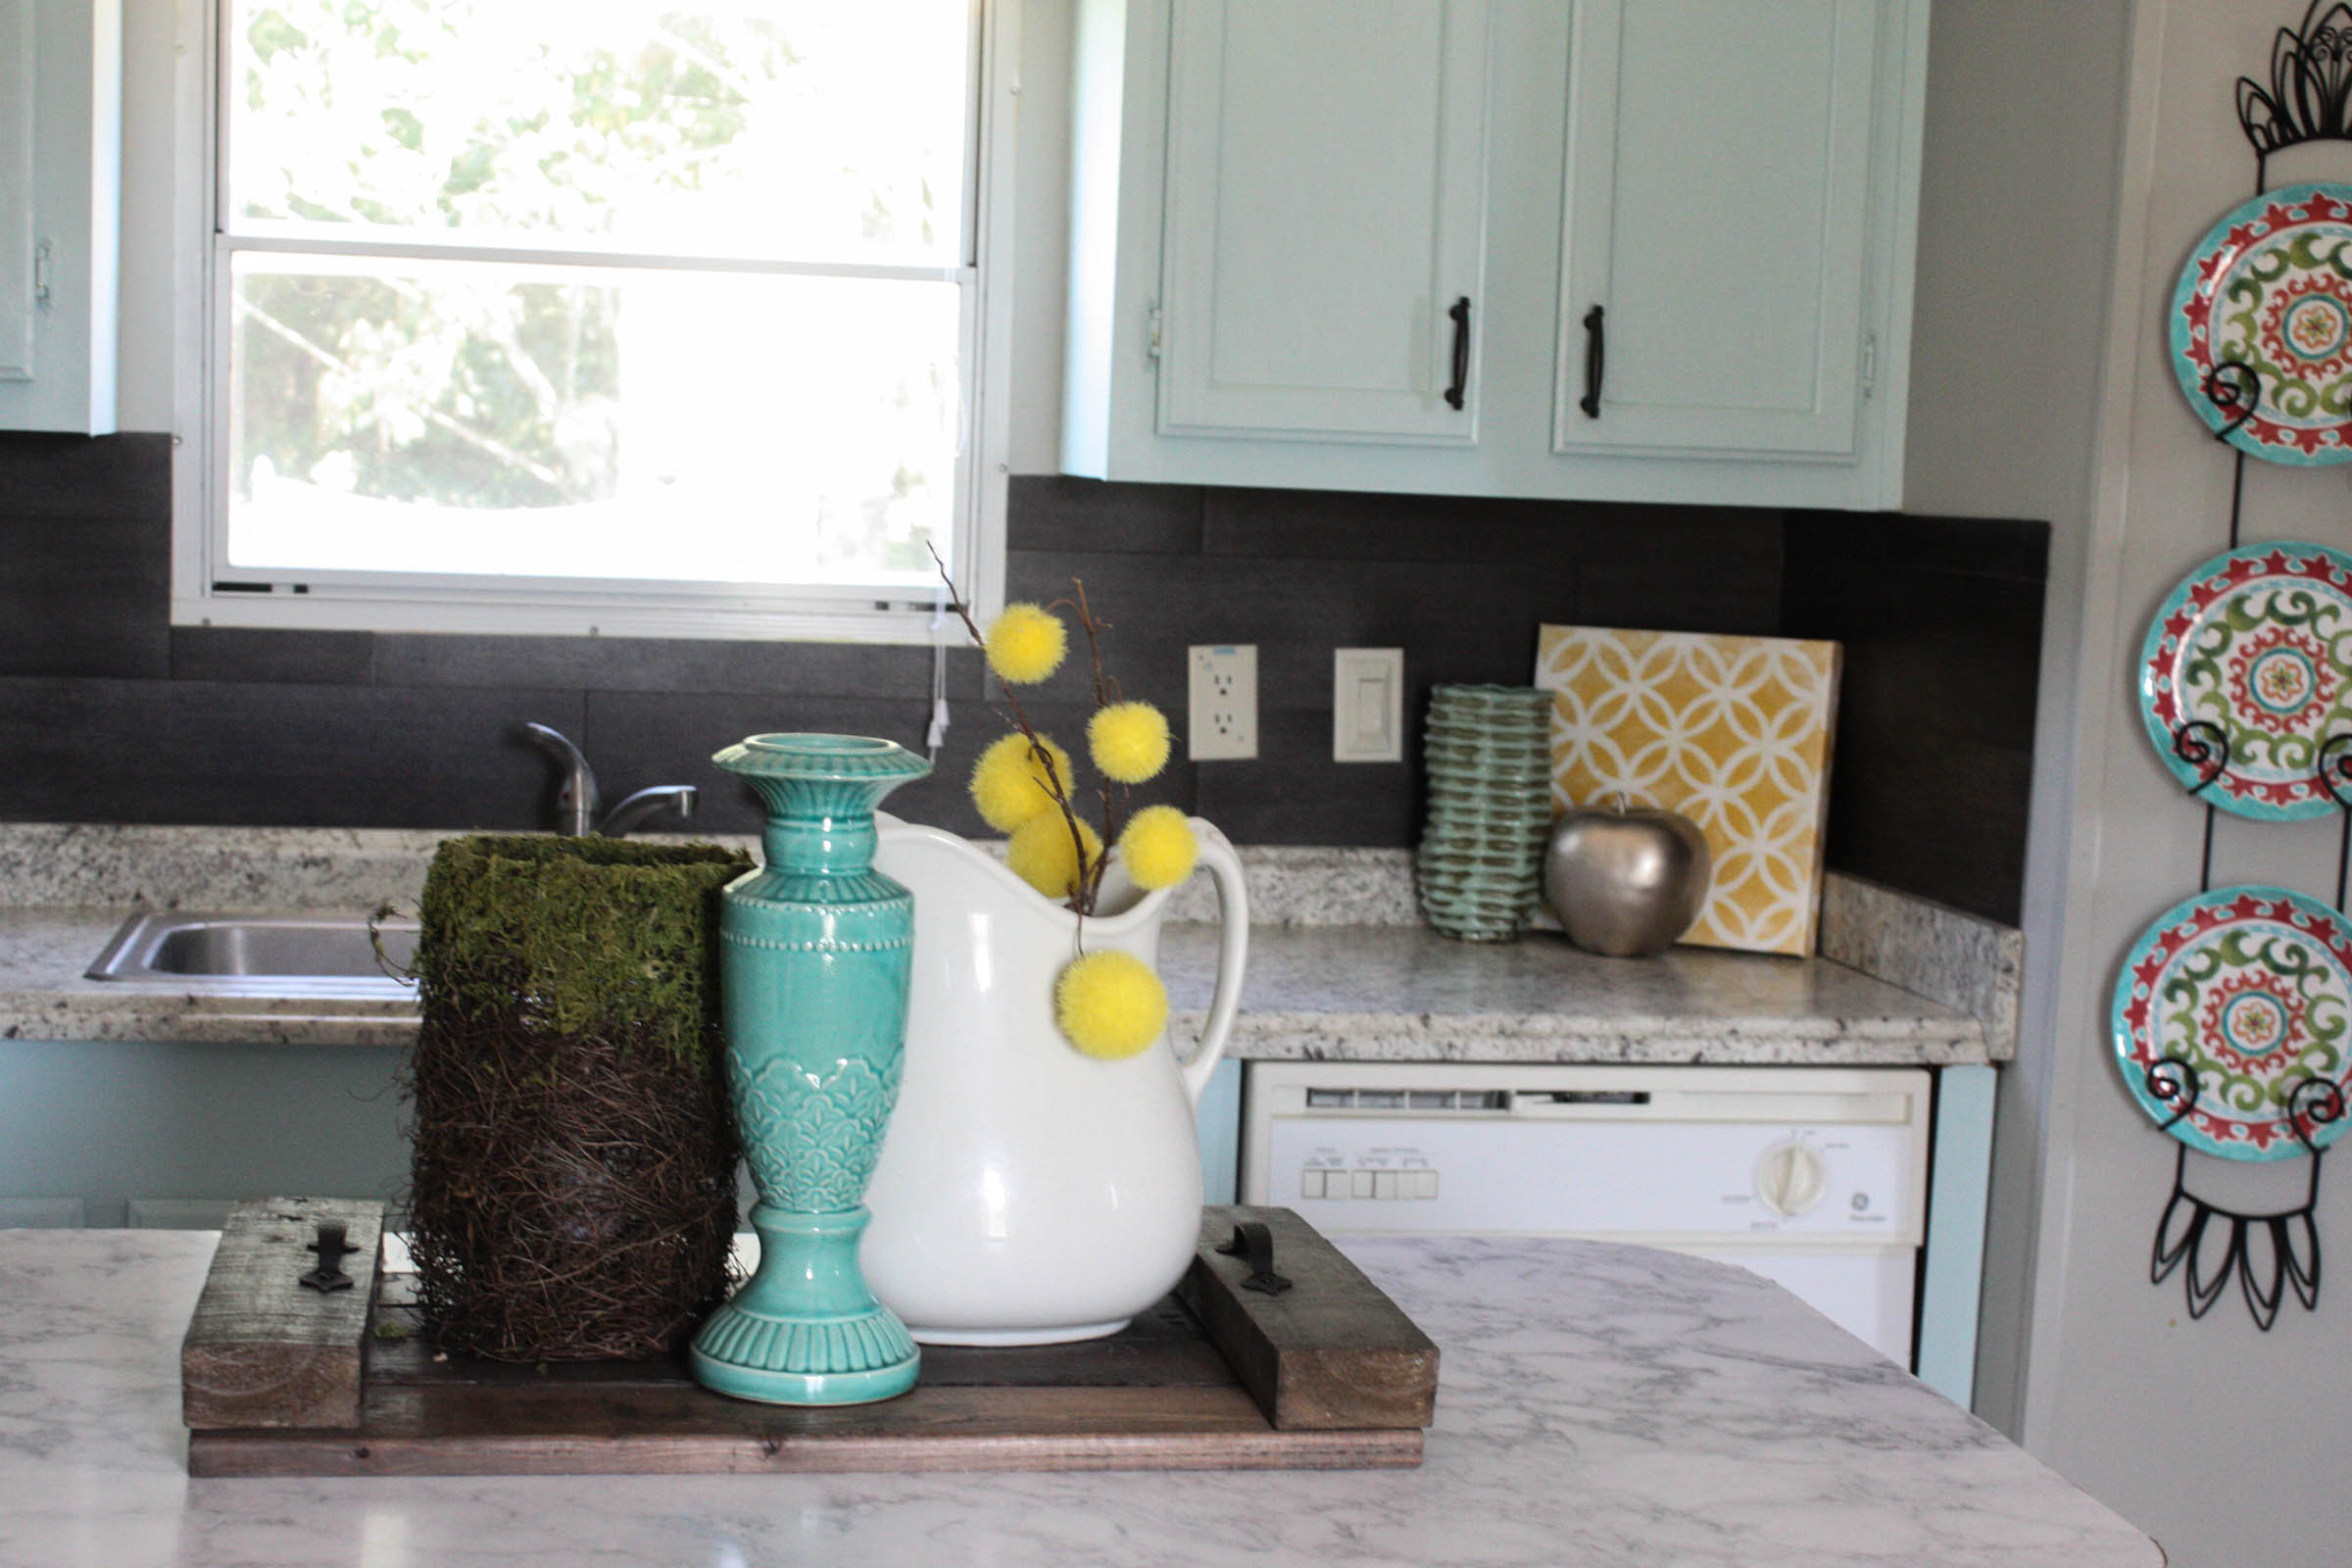 - Our $40 Backsplash {Using Vinyl Flooring} - Re-Fabbed